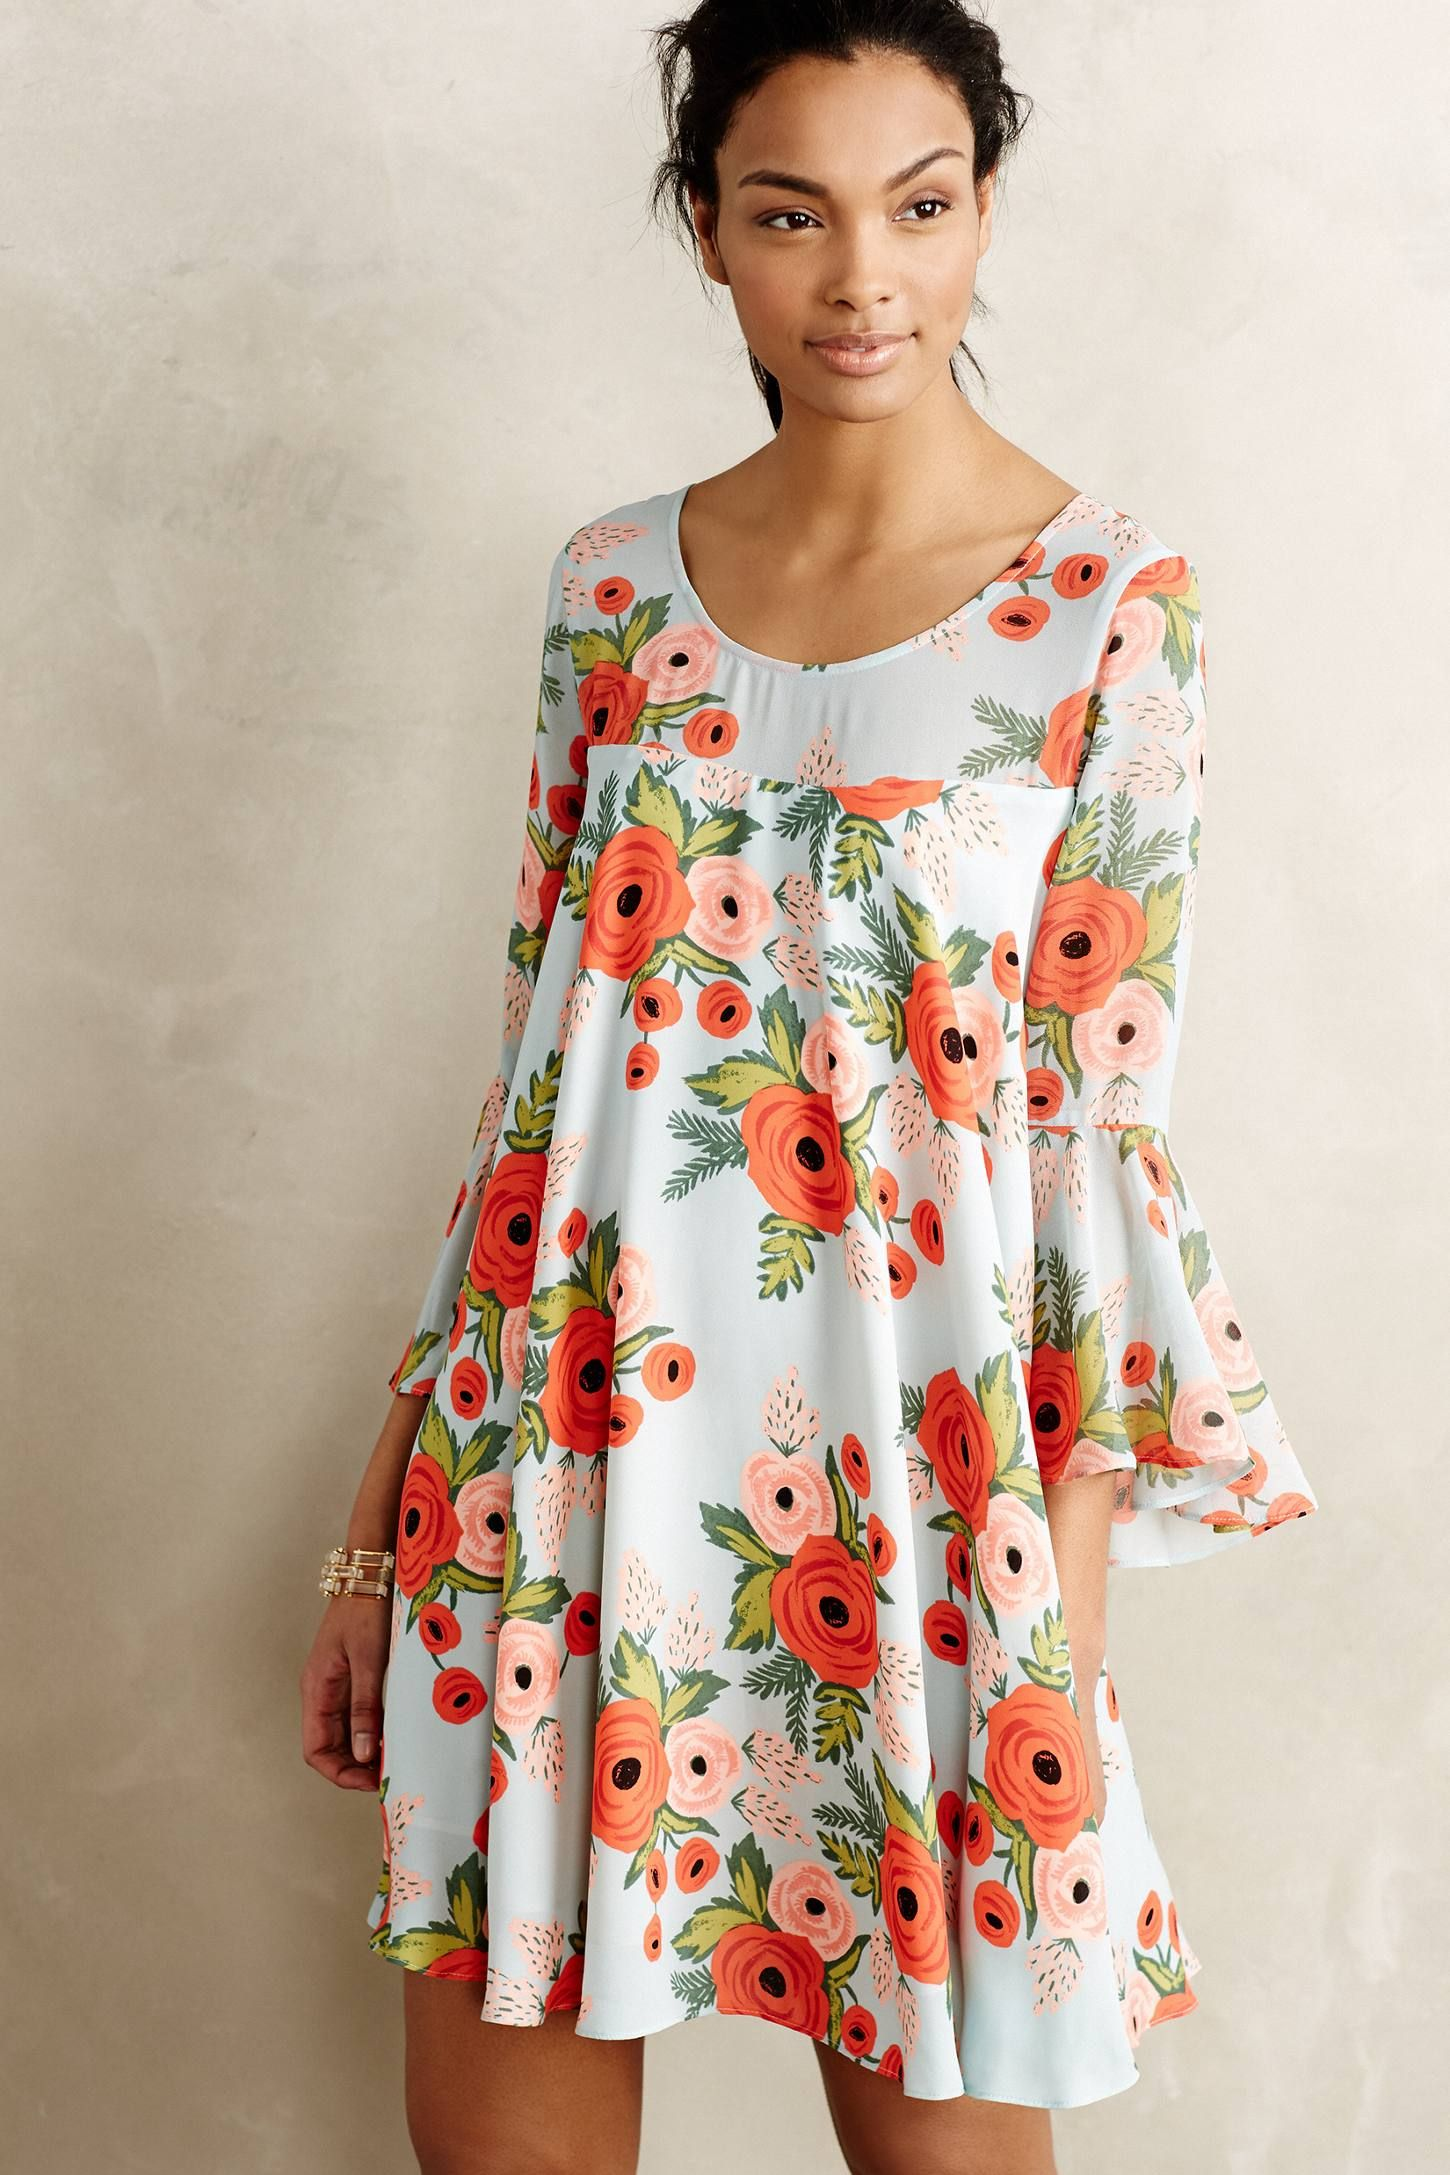 Paper Crown x Rifle Paper Co. dress designed exclusively for Anthropologie. fc1f58b9575e3